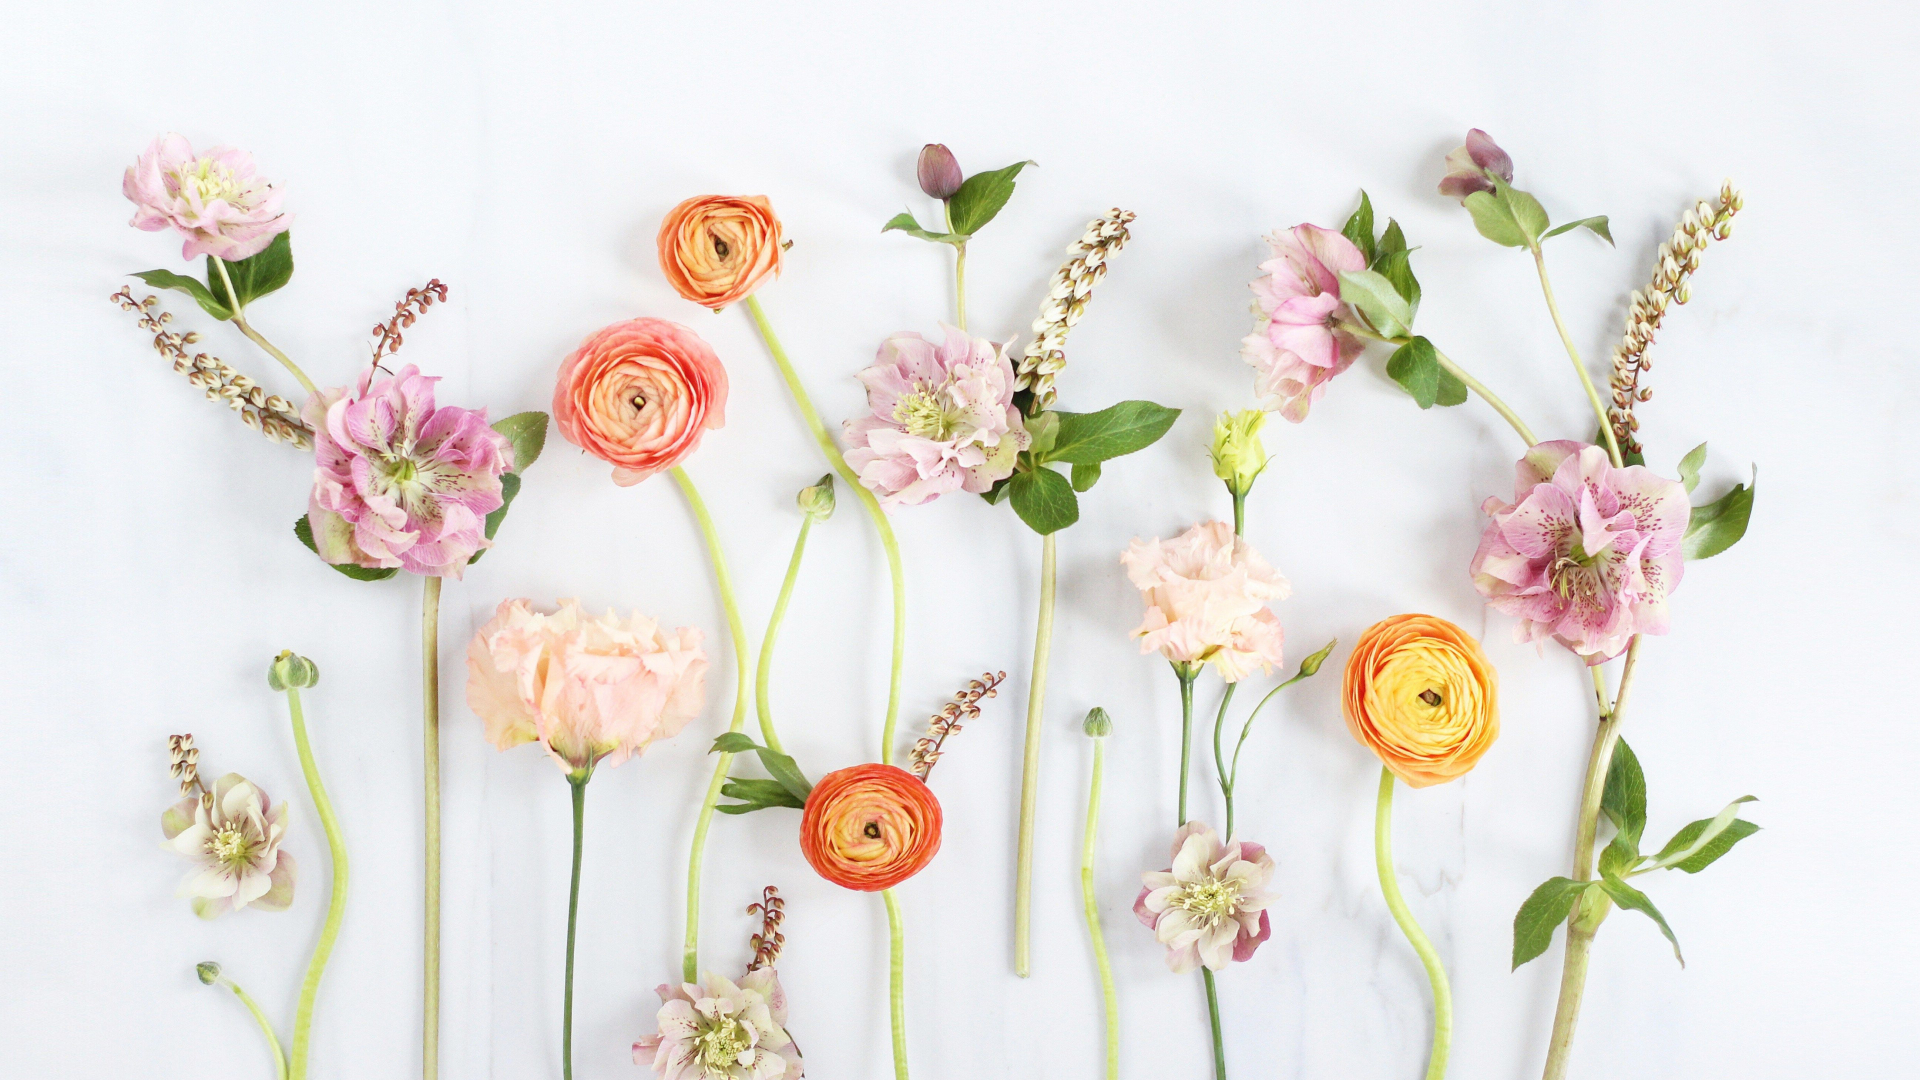 Free Download Floral Computer Wallpapers Top Floral Computer